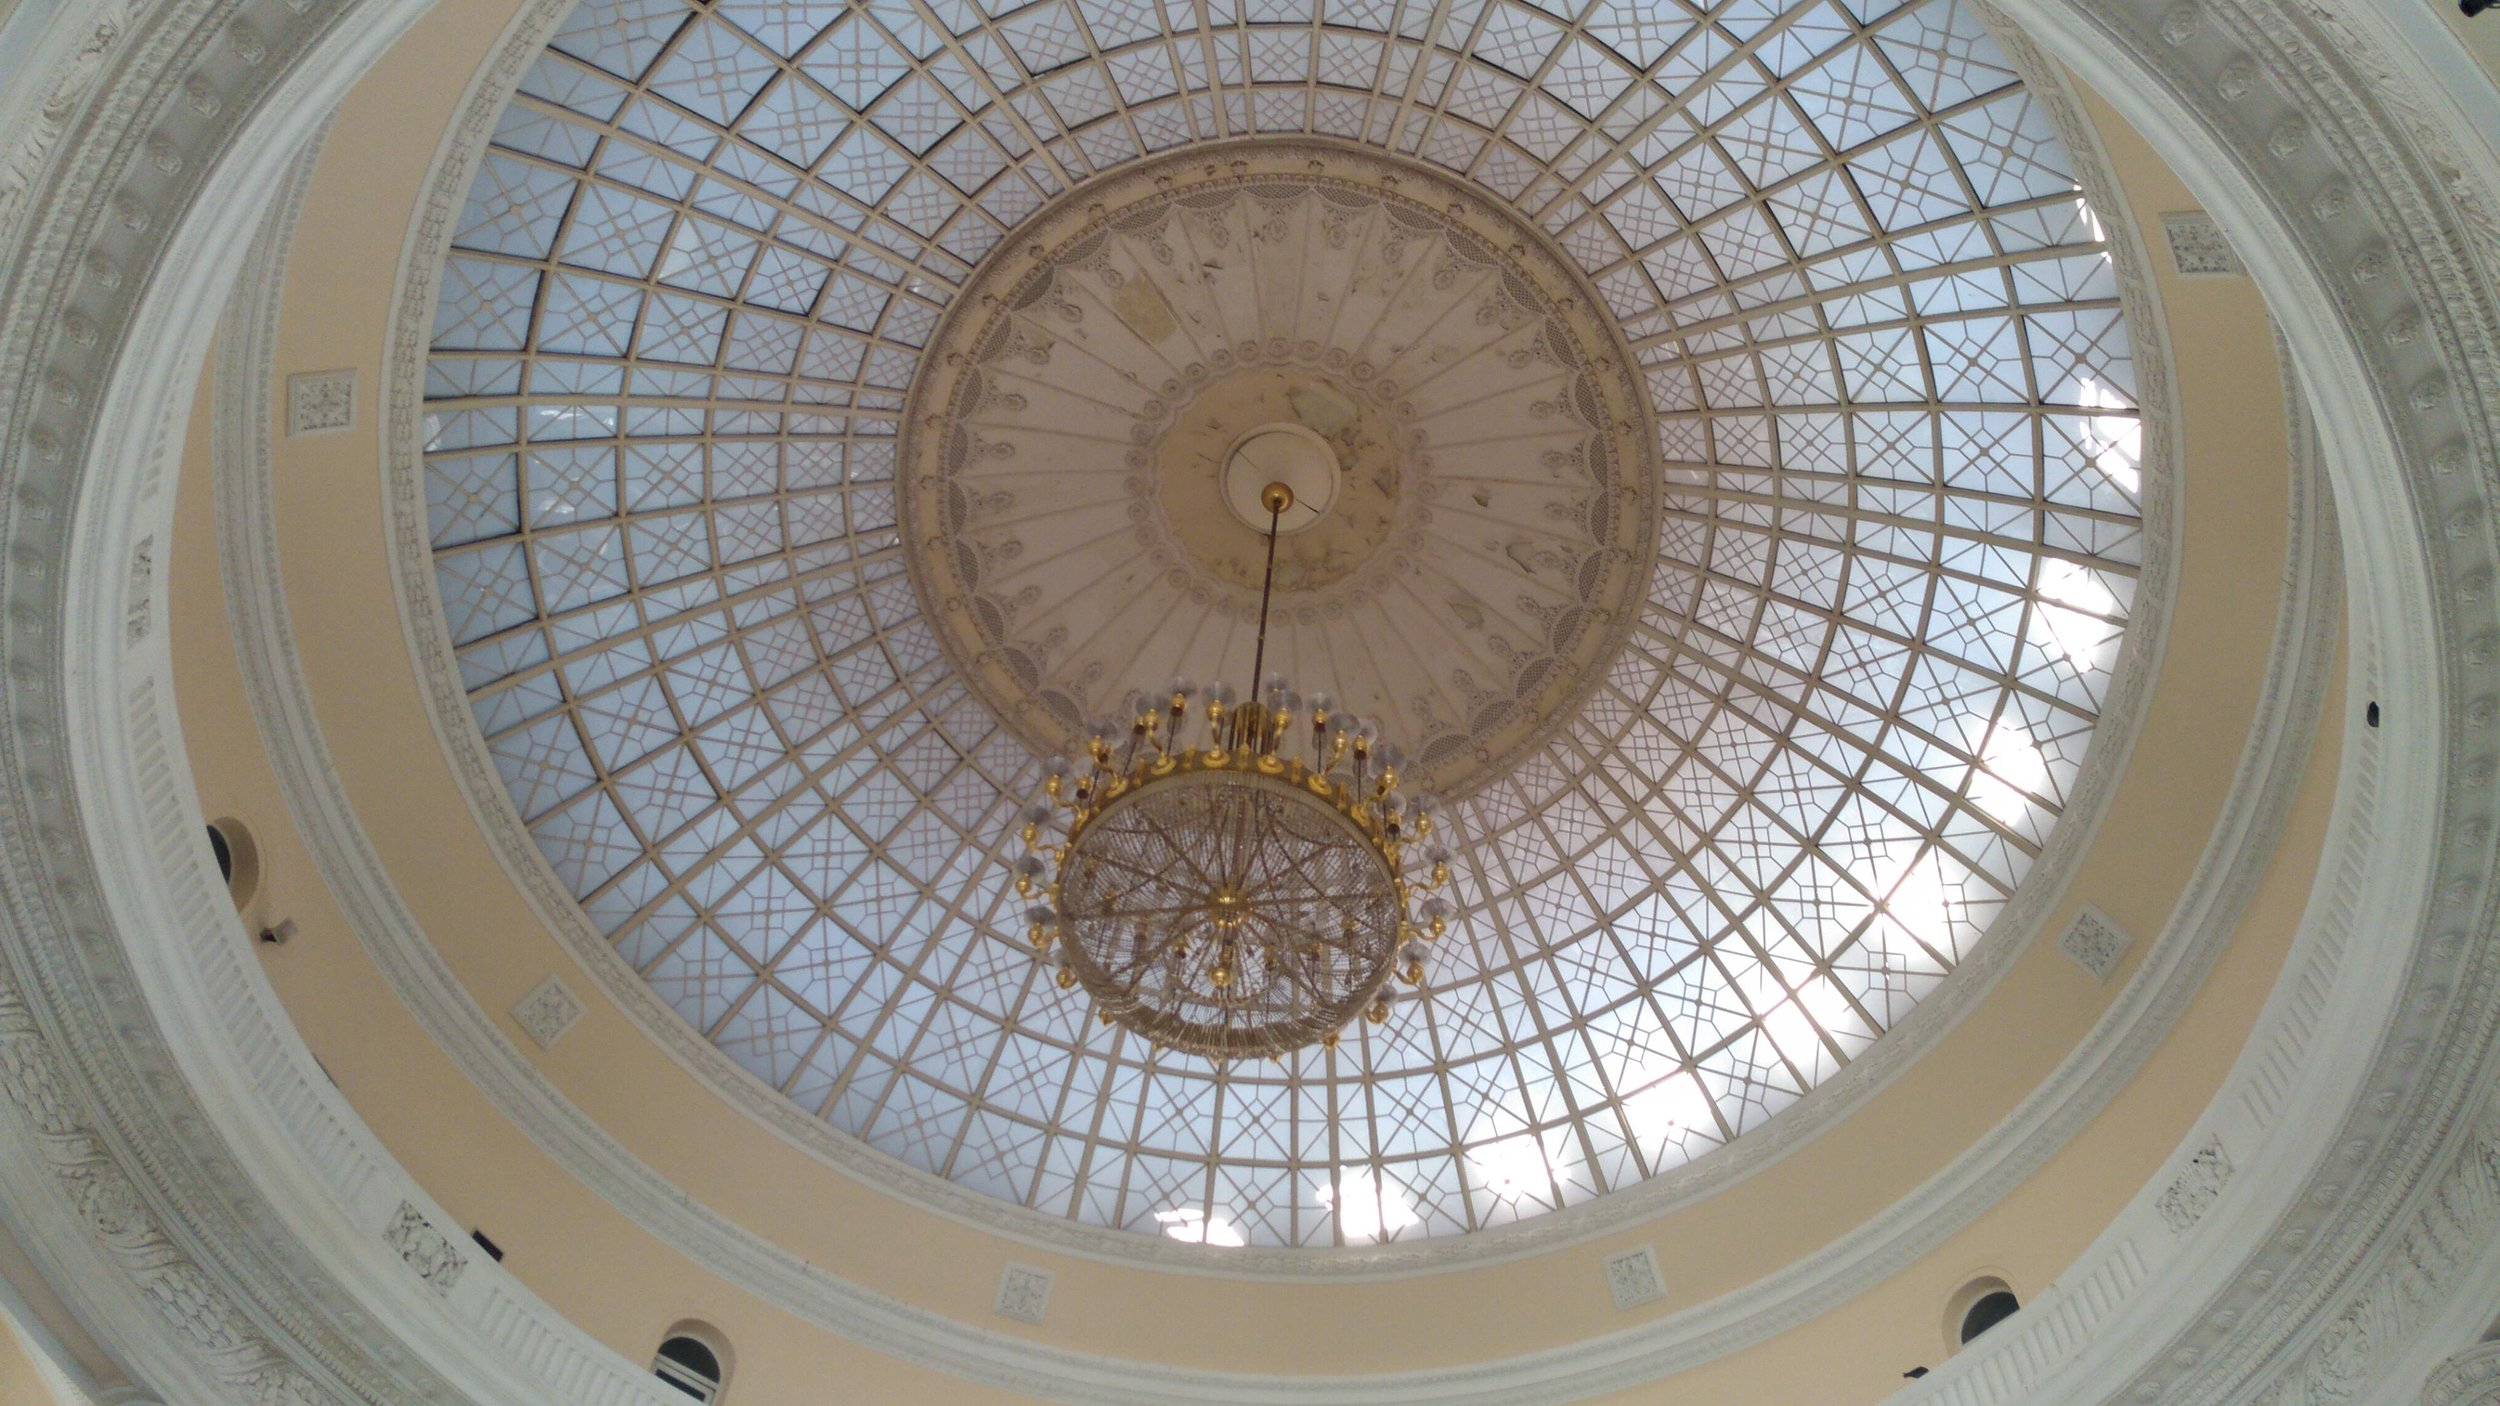 The great ceiling and chandelier in the central Odessa, Ukraine train station